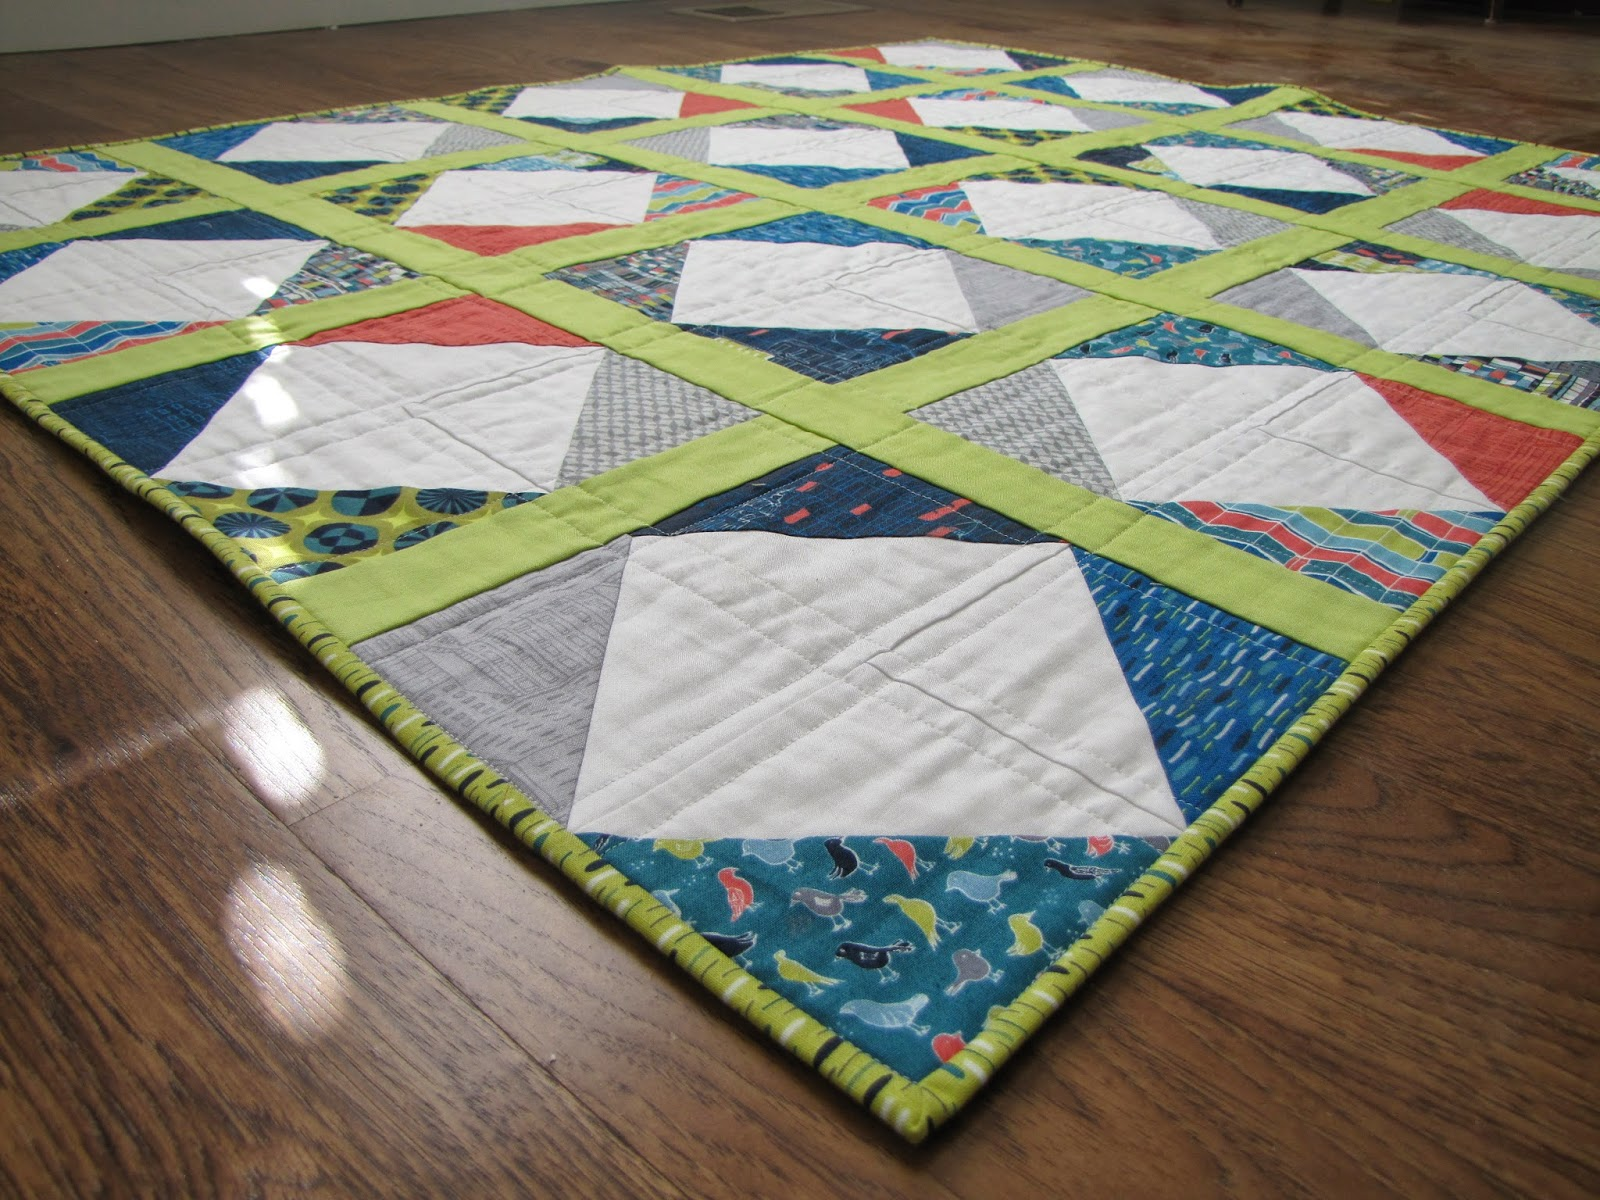 http://snippysisters.blogspot.com/2013/04/city-blocks-quilt-finish.html